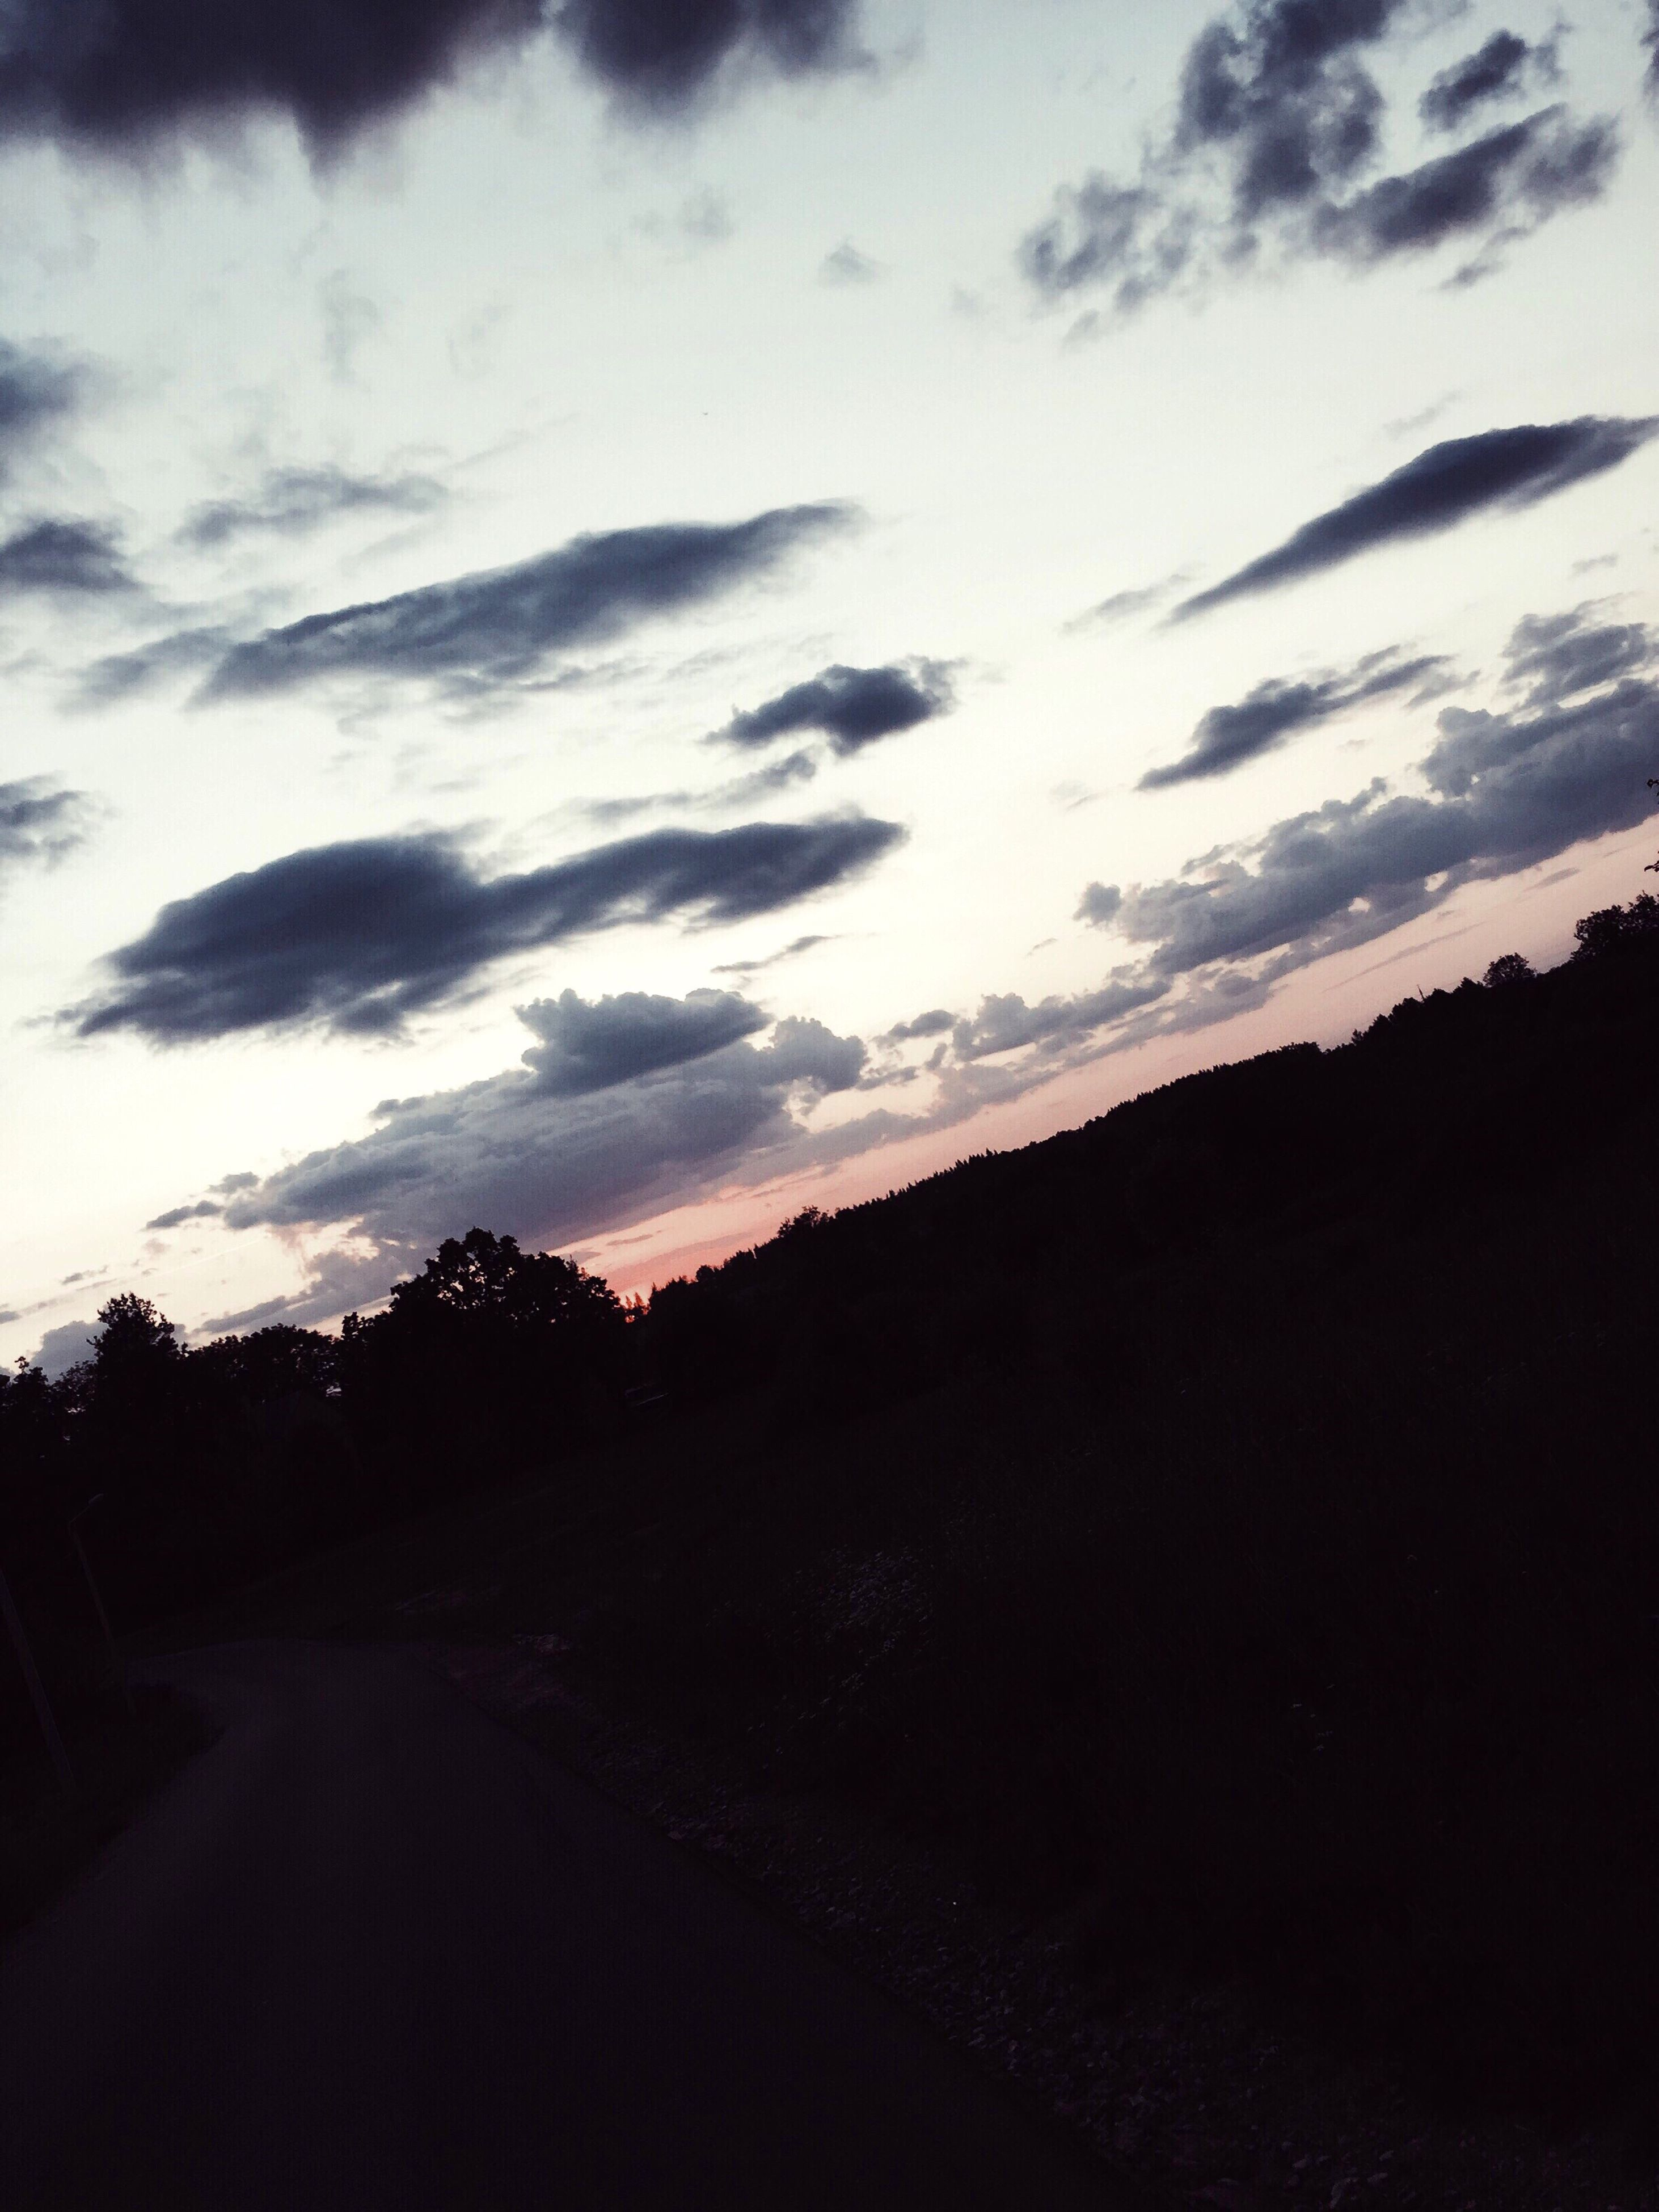 silhouette, sunset, sky, nature, cloud - sky, beauty in nature, scenics, outdoors, no people, tranquility, tranquil scene, mountain, landscape, day